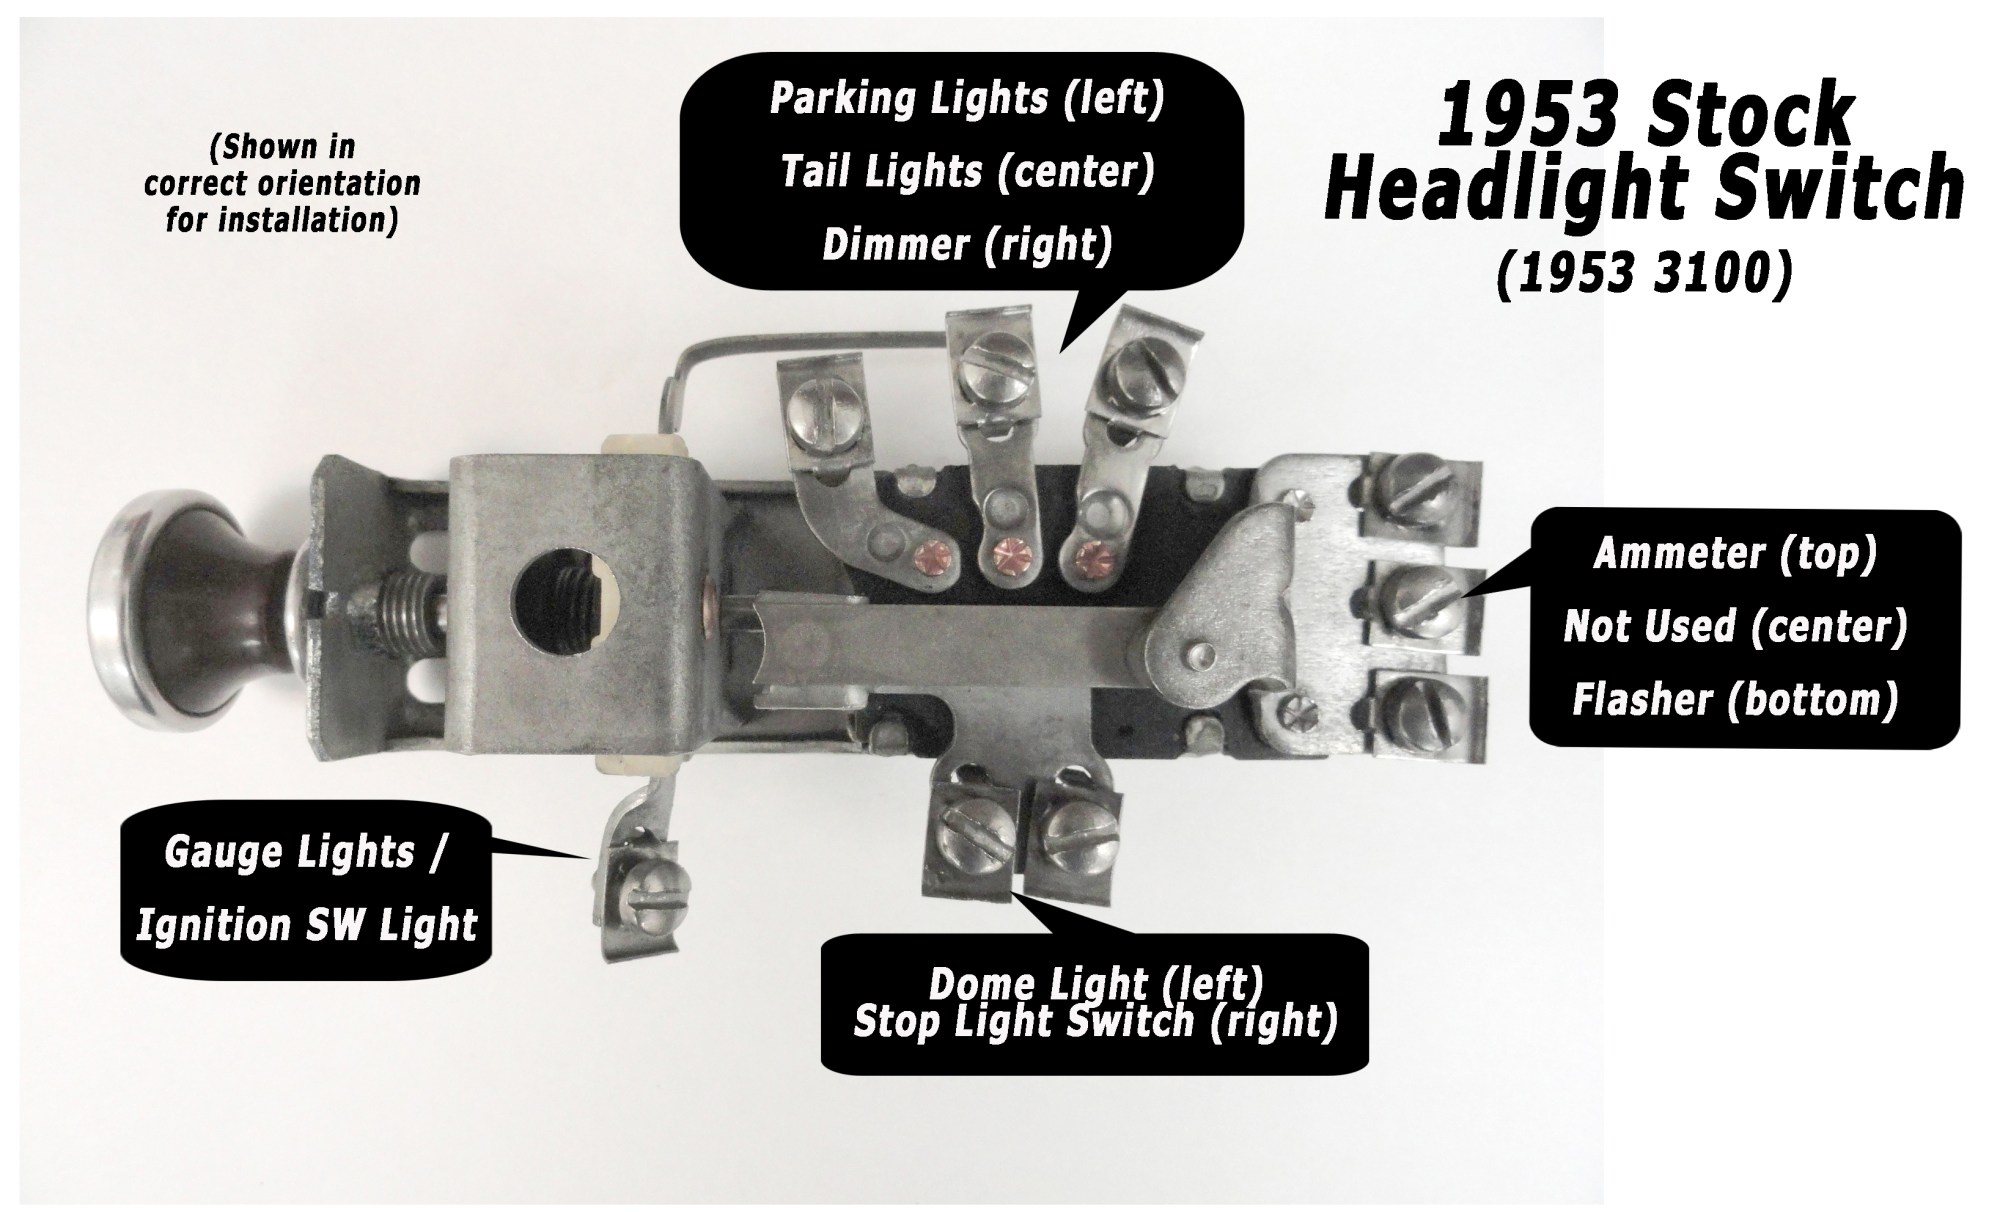 hight resolution of 1953 headlightswitchdiagramlg jpg